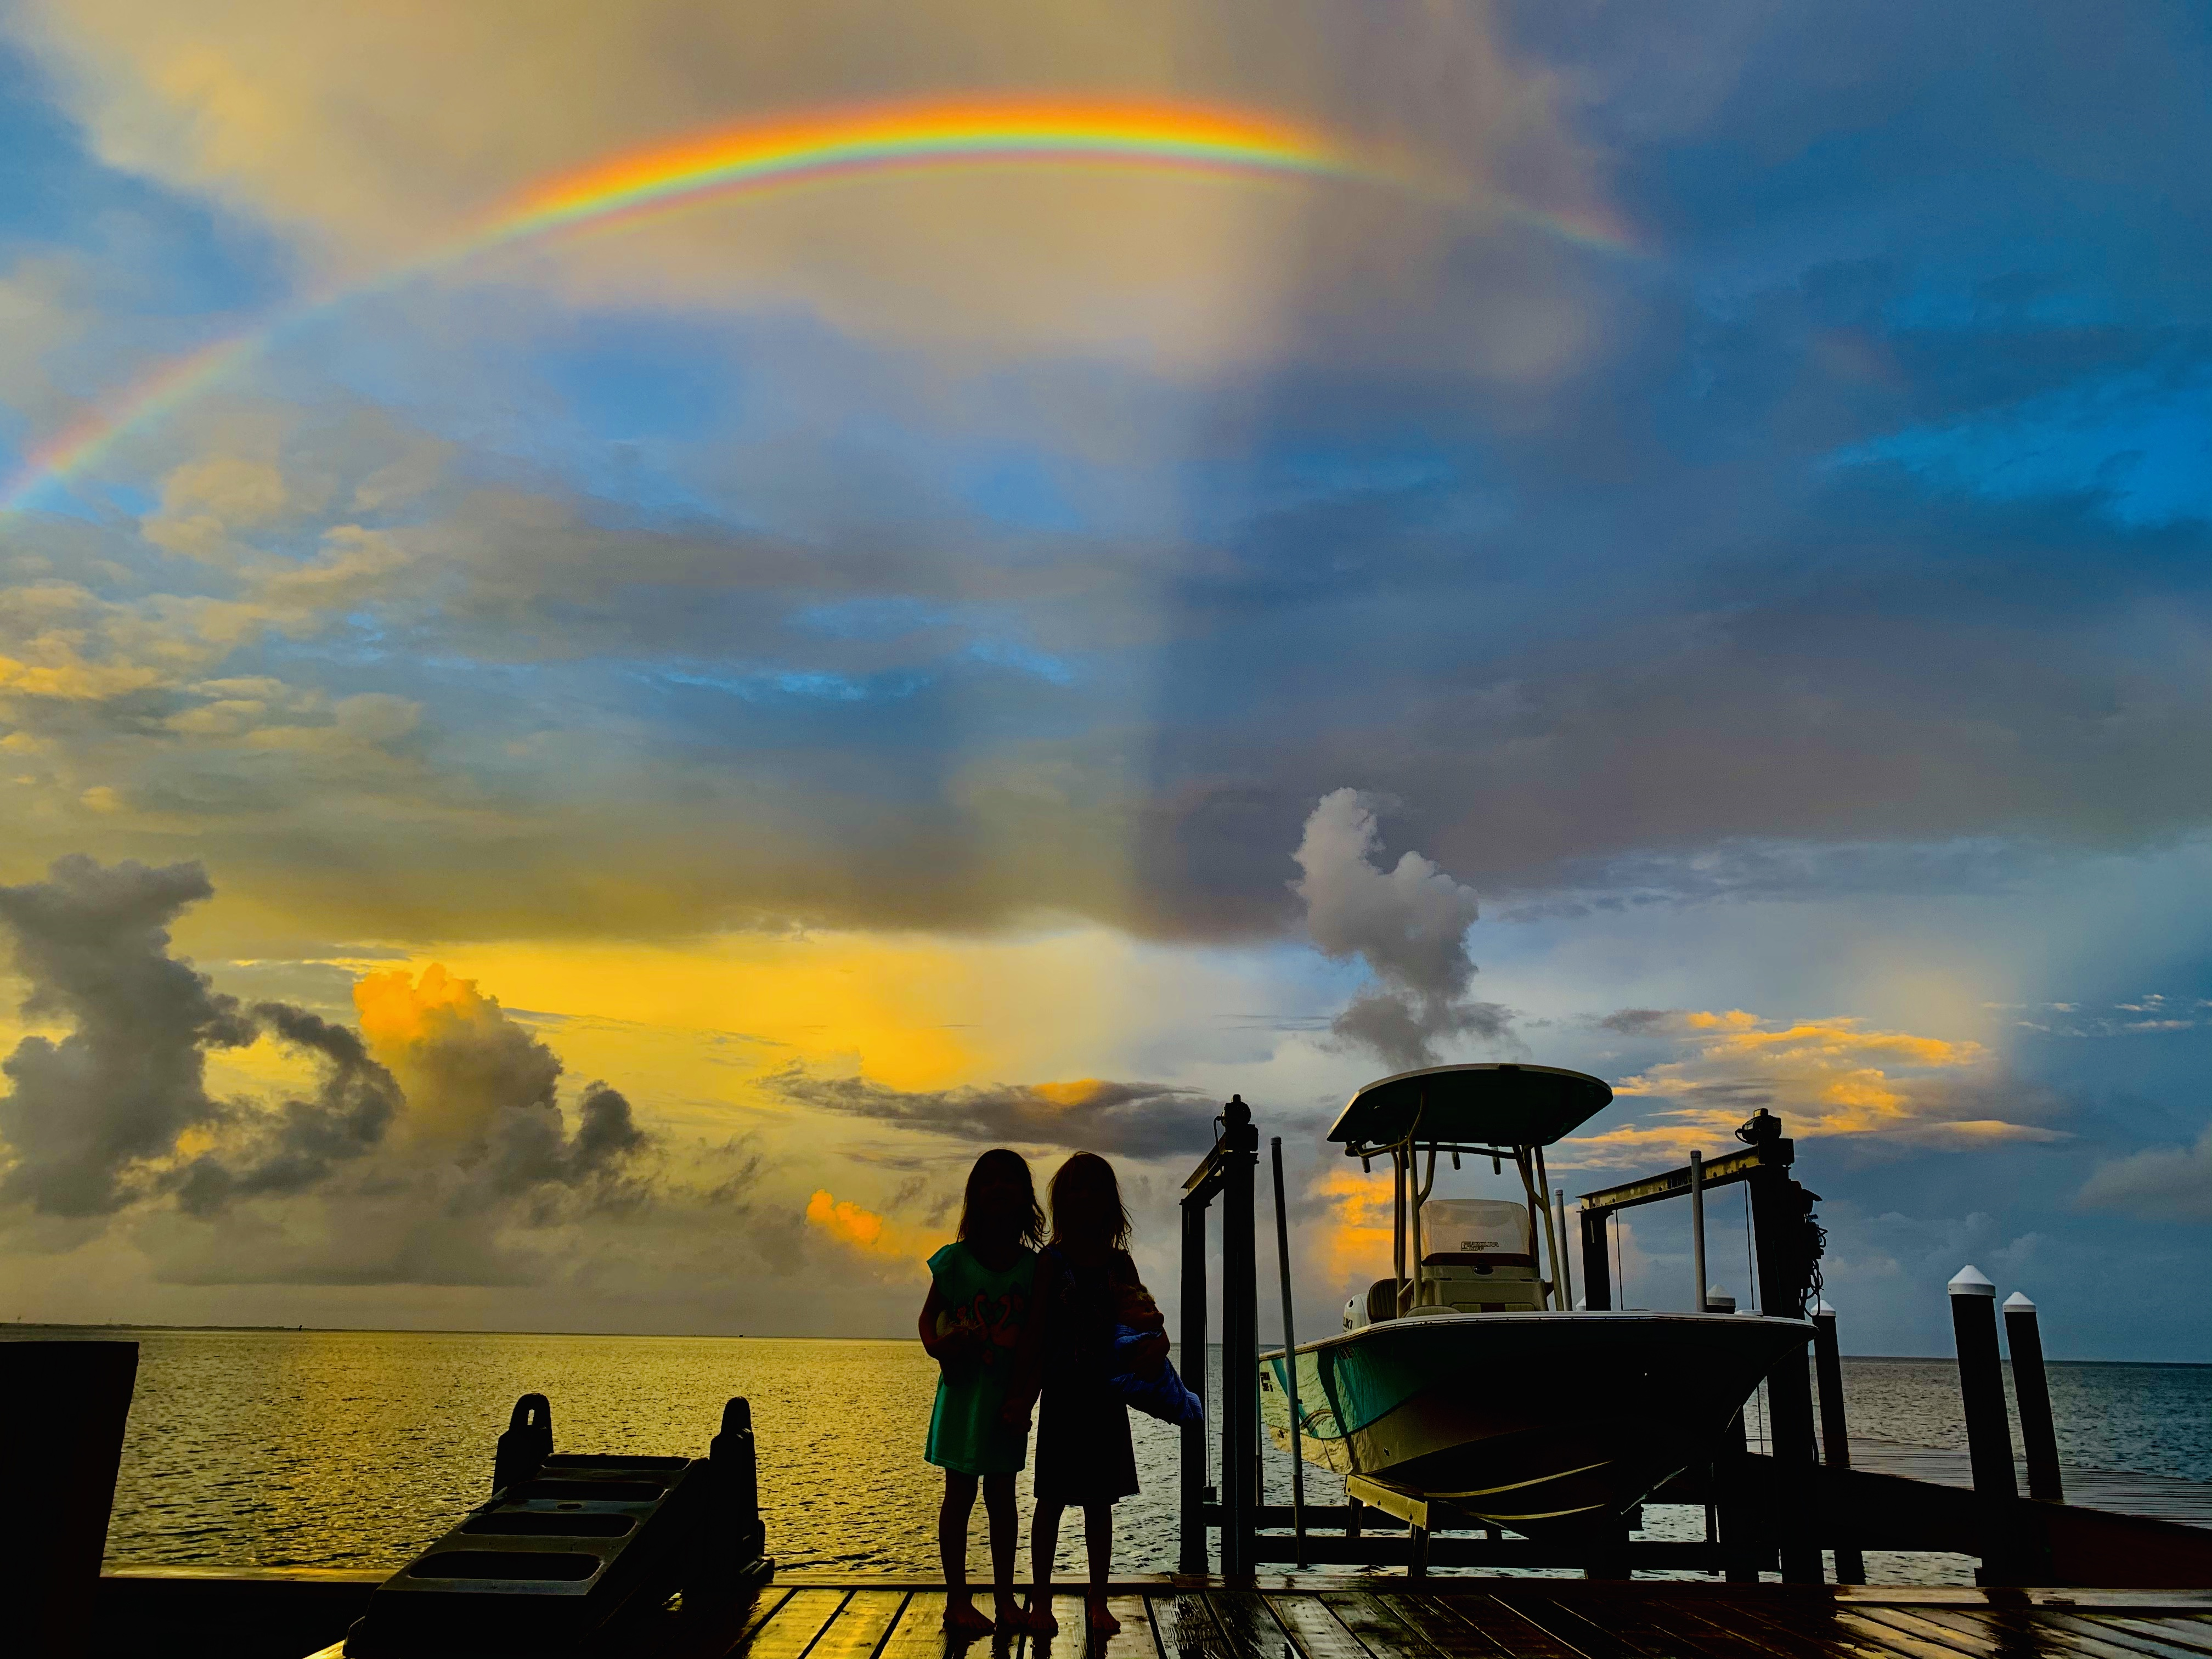 Sunset and Rainbow over the Pamlico Sound in Brigands Bay Frisco